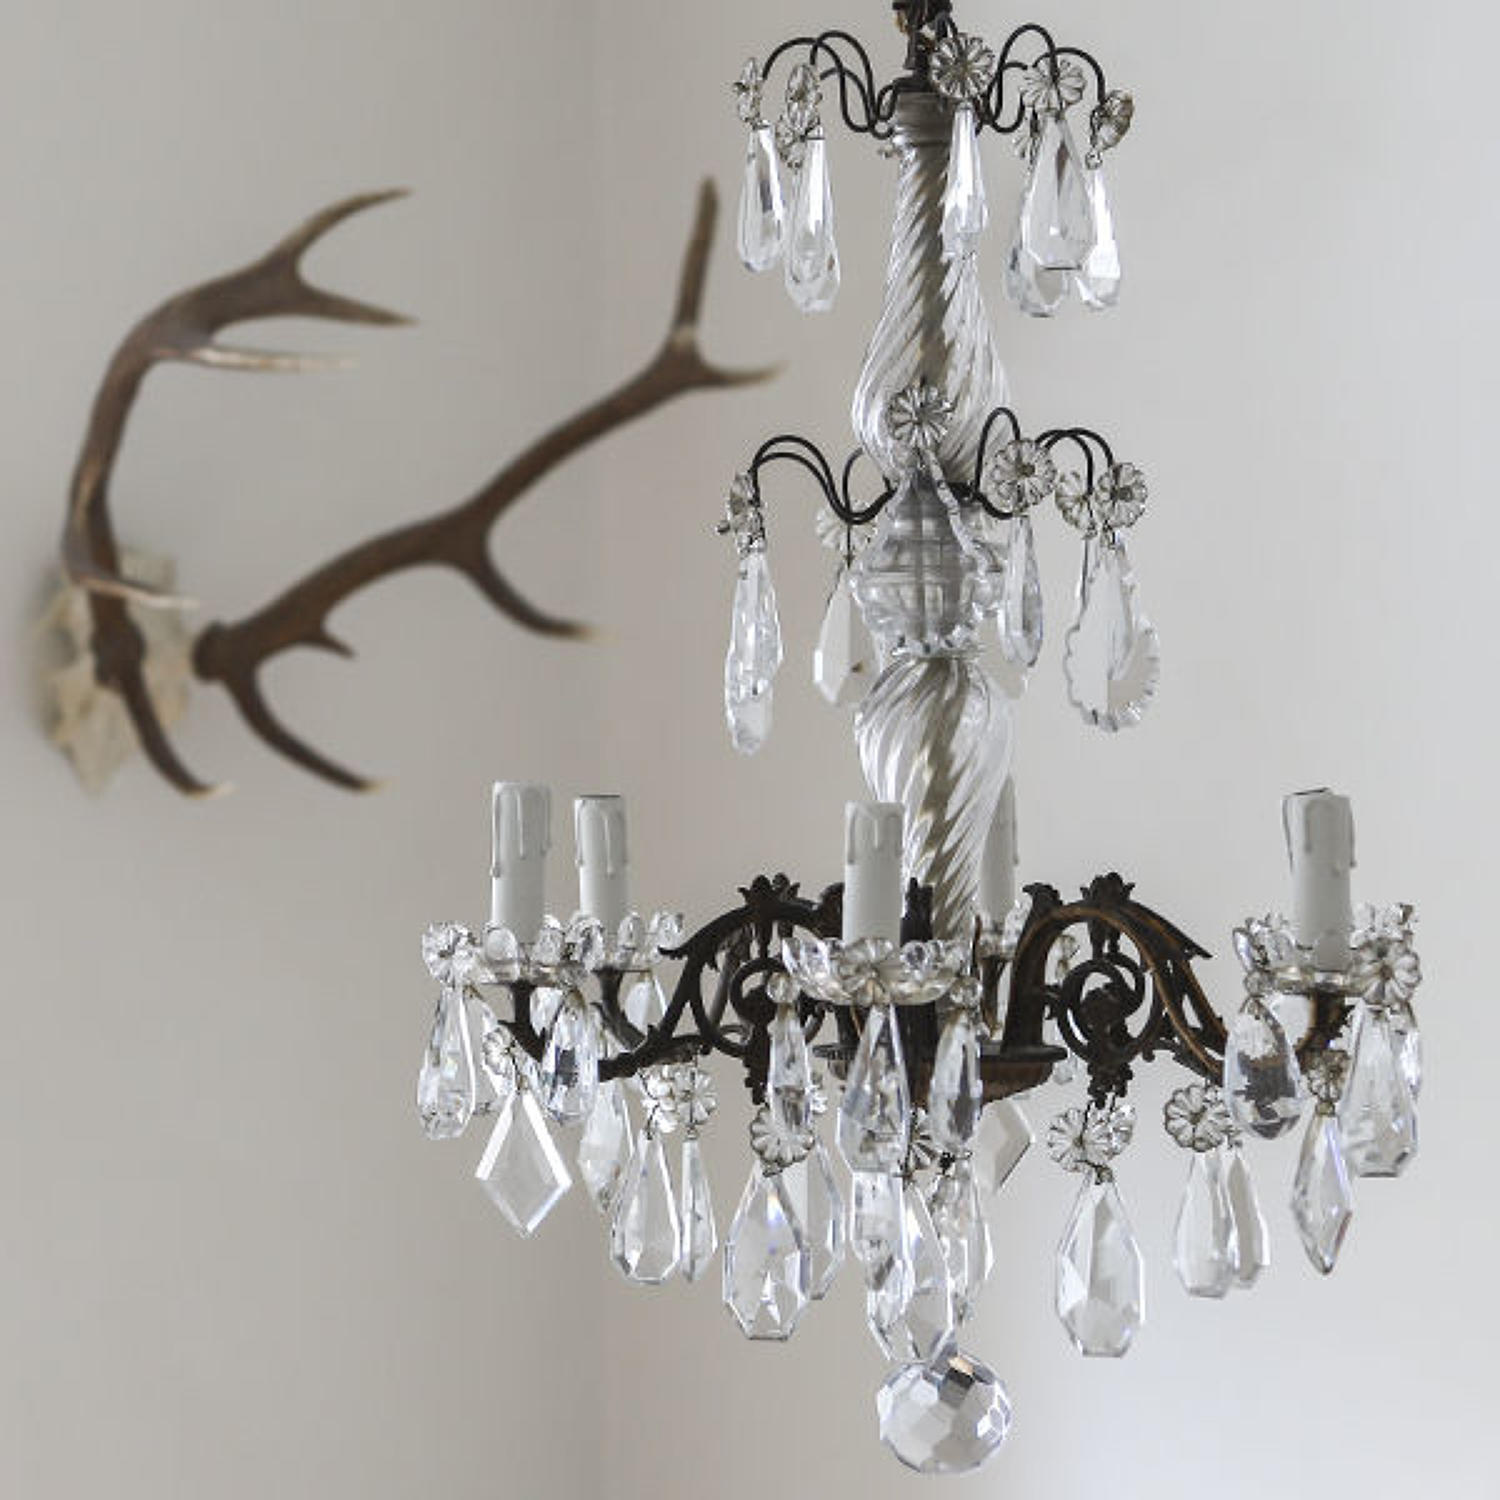 19th century French antique crystal chandelier